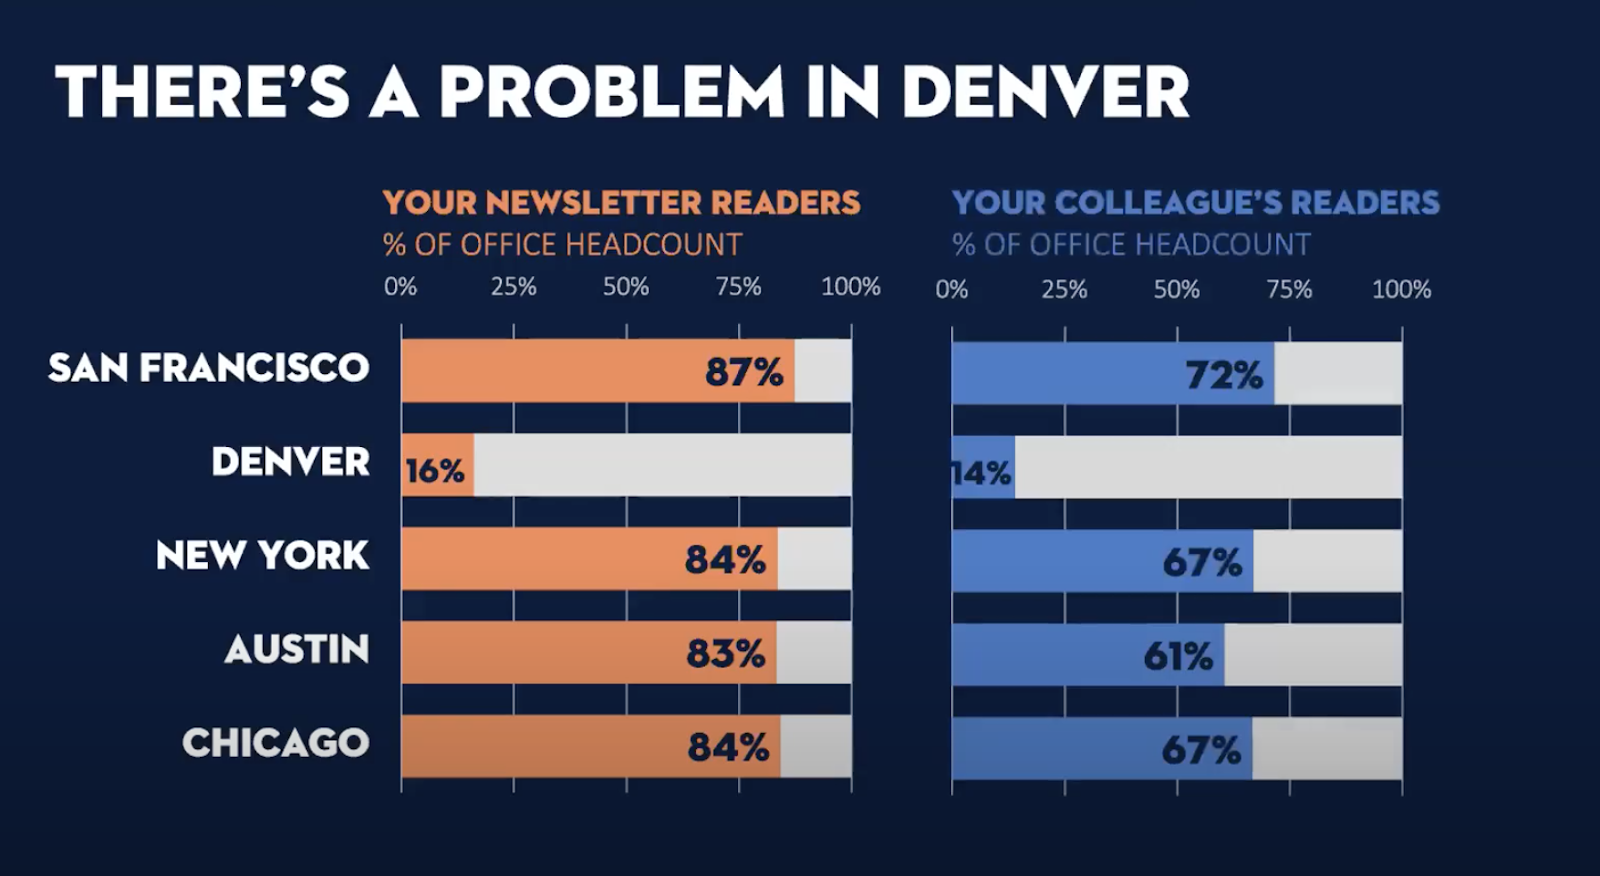 Side-by-side bar charts comparing your newsletter readers (in orange against gray) to your colleague's readers (in blue against gray)